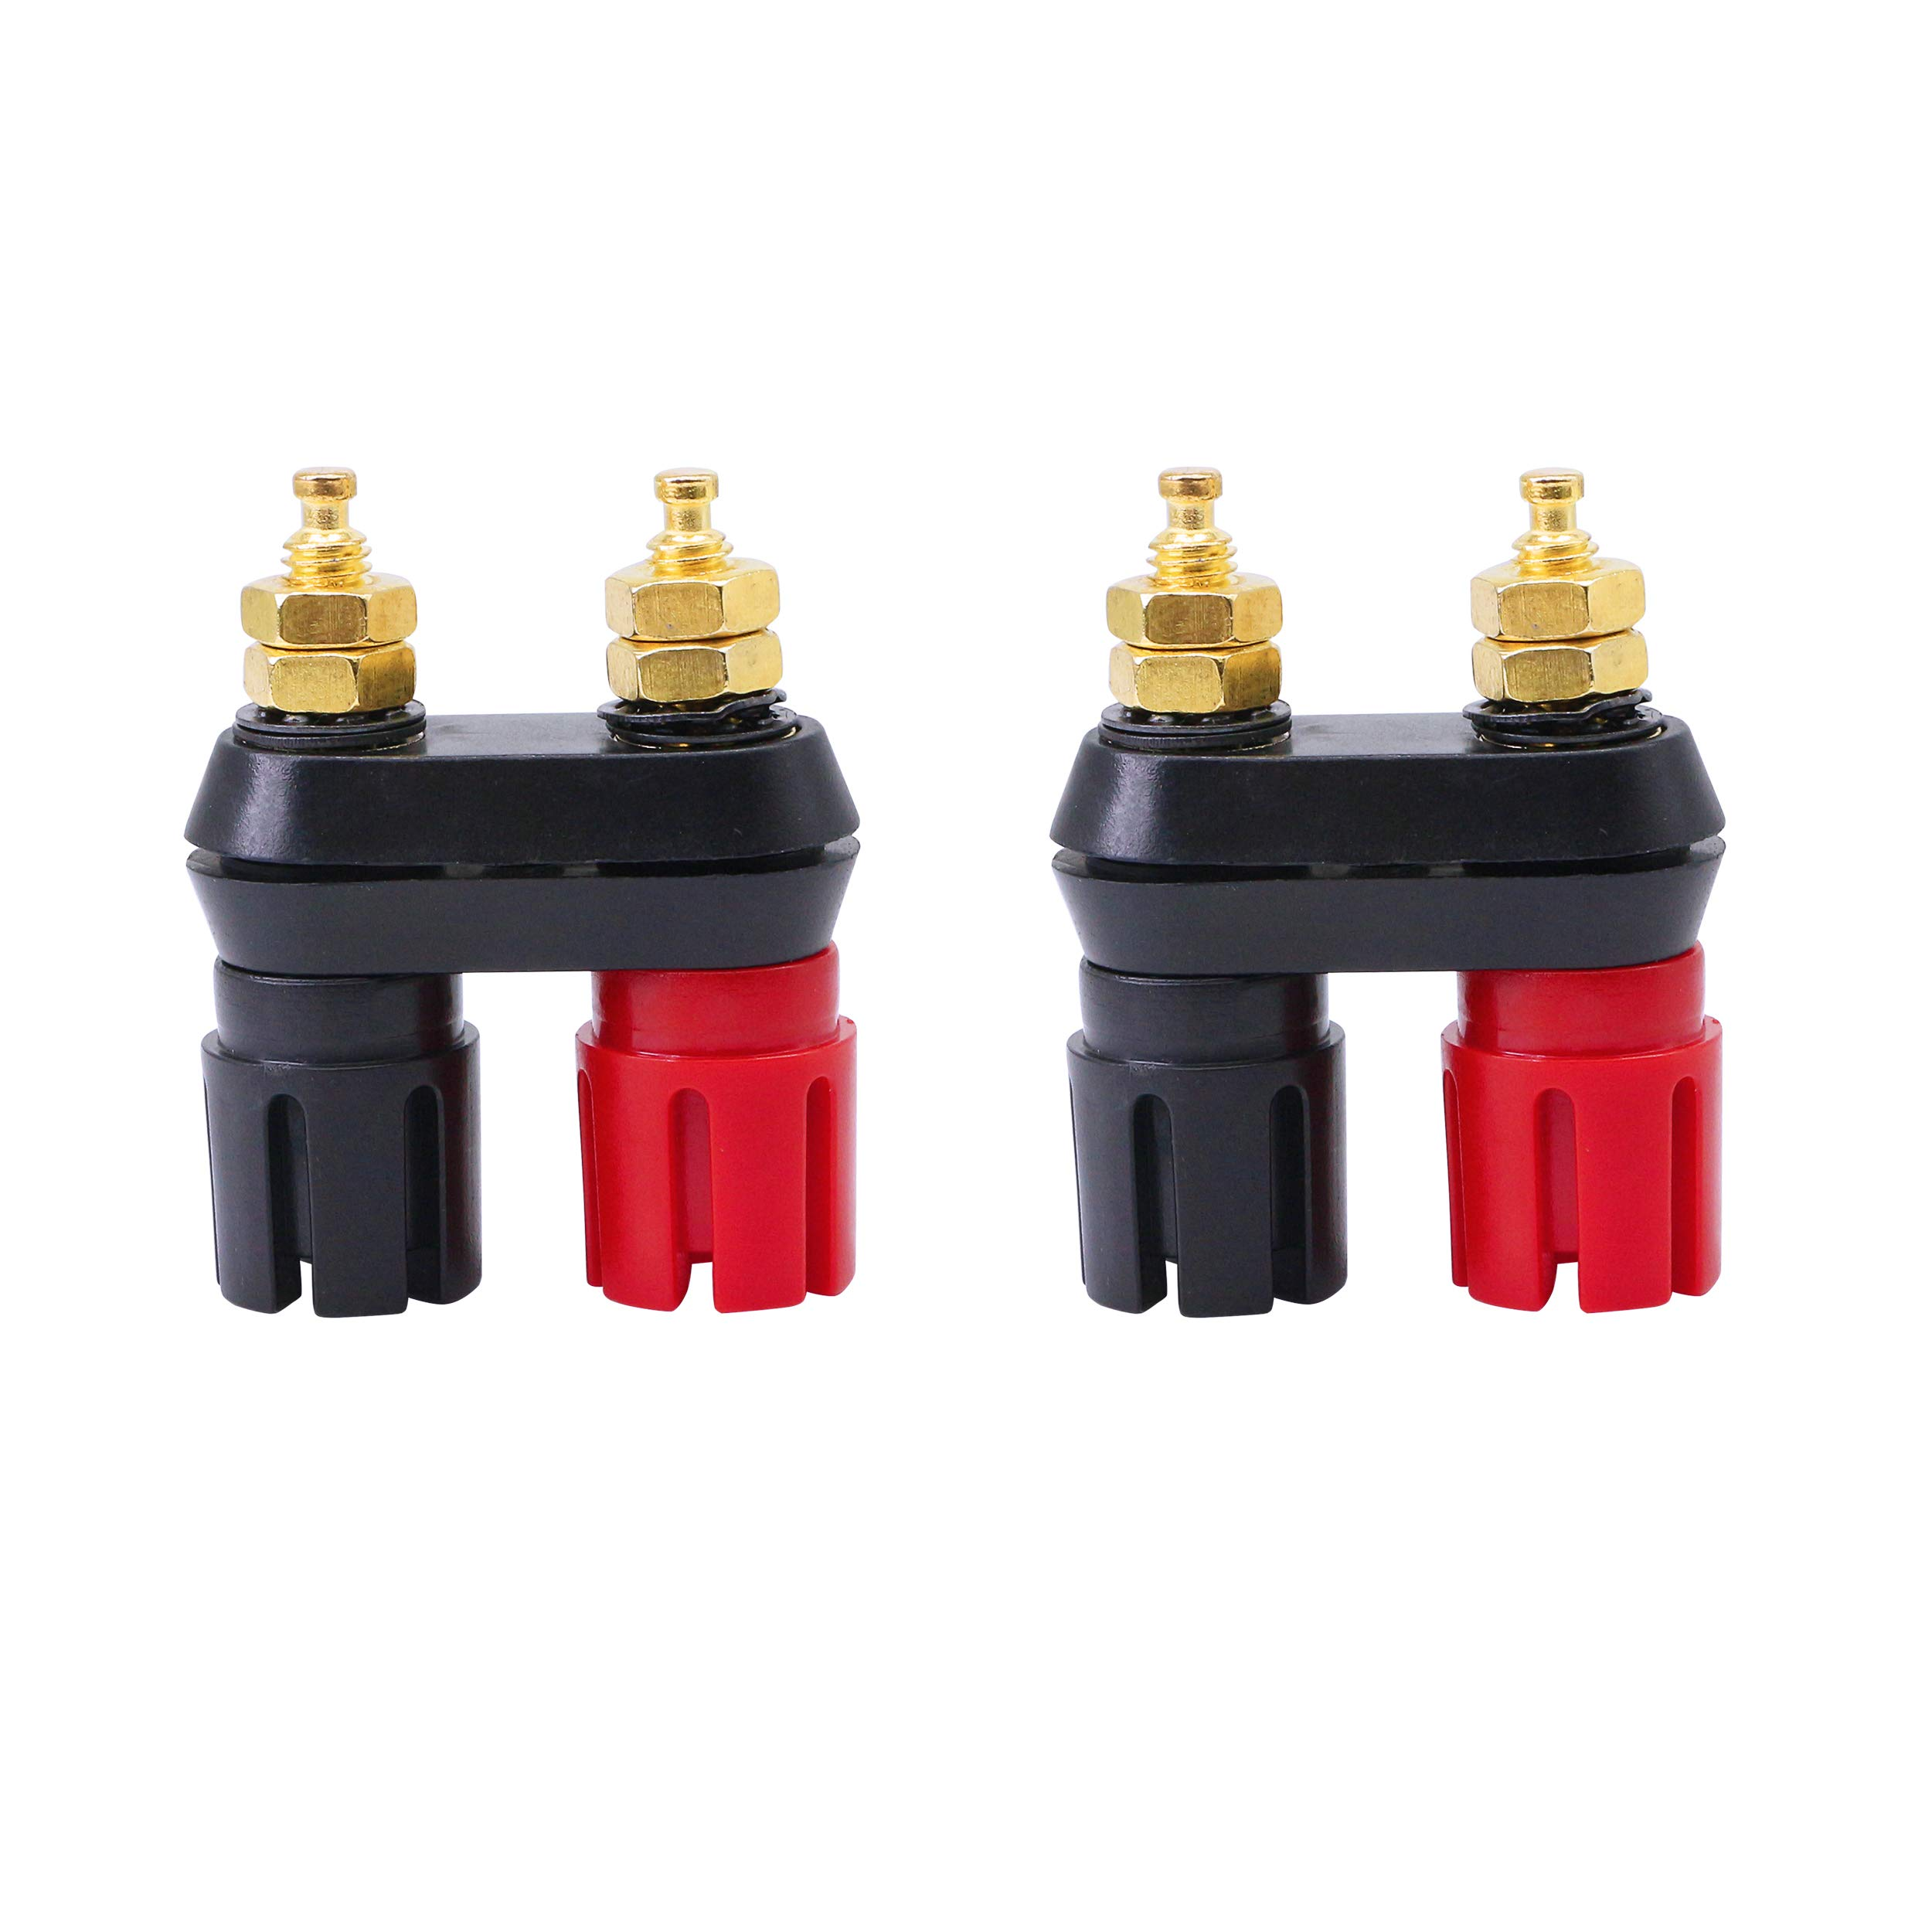 Conwork 4-Pack Pure Copper Binding Post for Amplifier Speaker Terminal Connector 4mm Banana Plug Transparent Plastic Cover